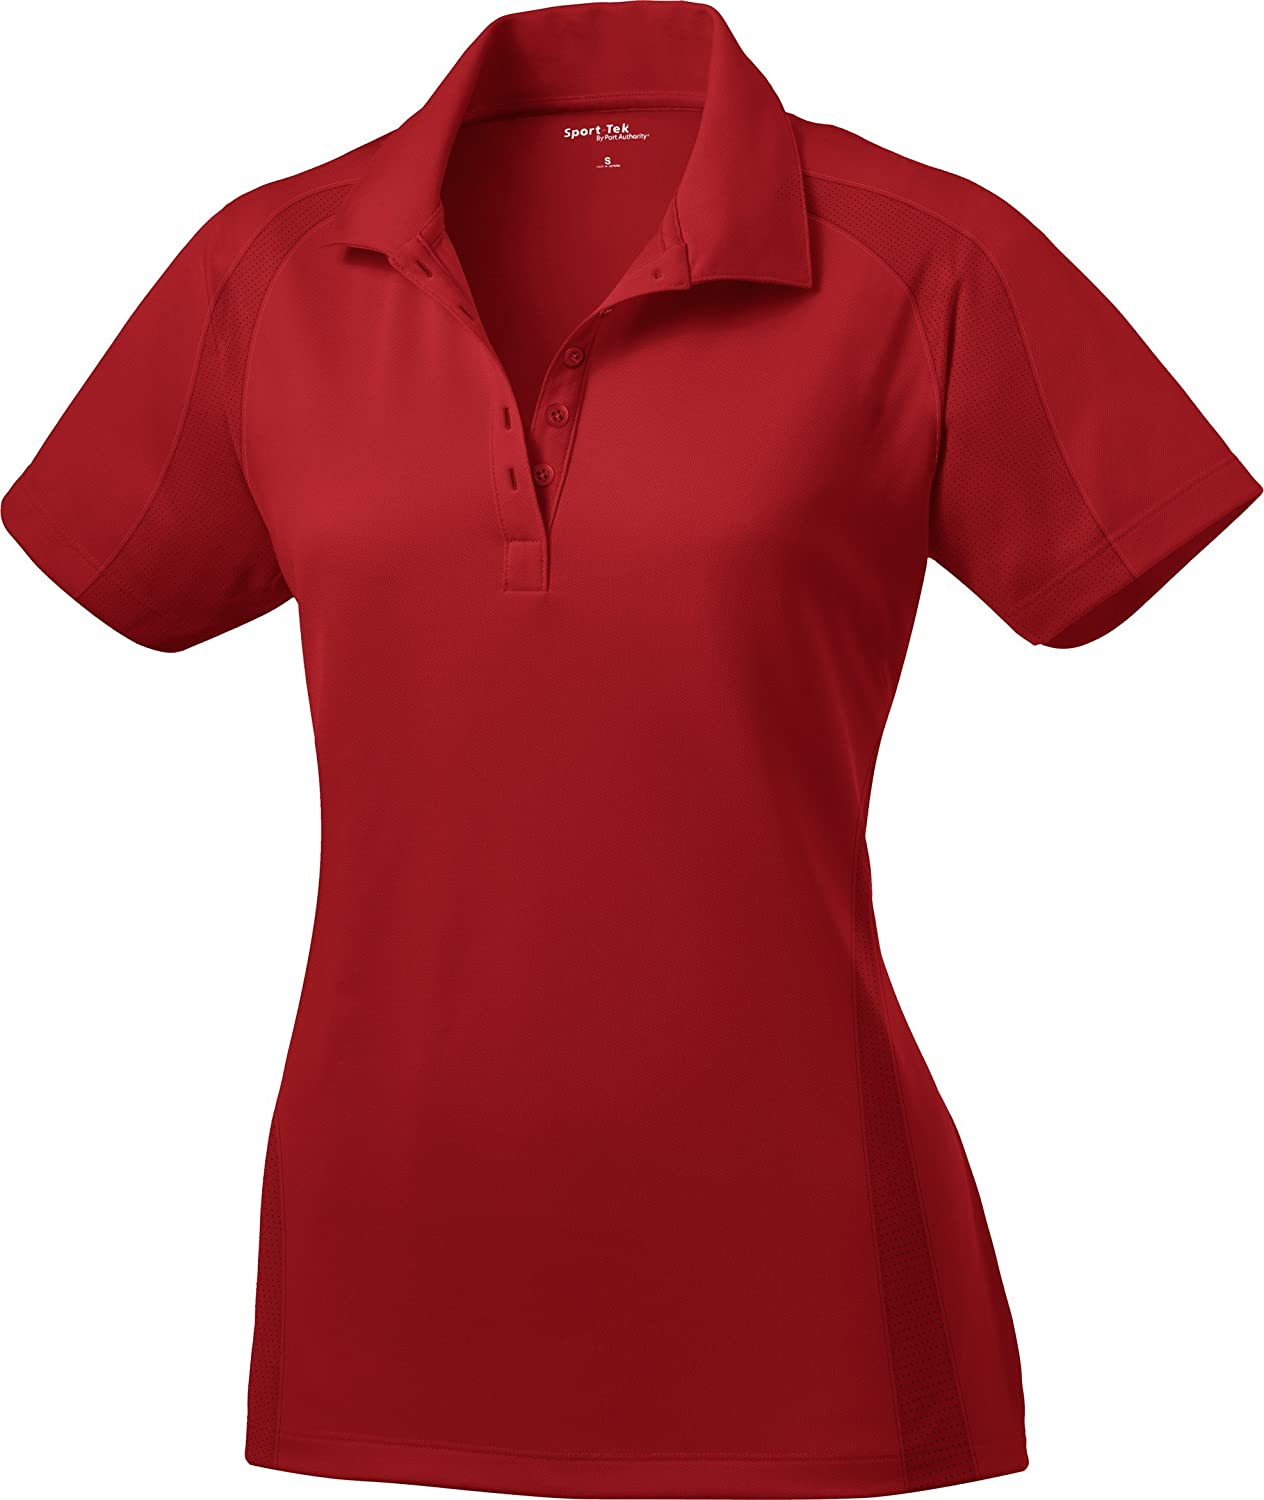 Sport Tek Ladies Dri Mesh Pro Performance Polo Shirt L474 Xl Engine